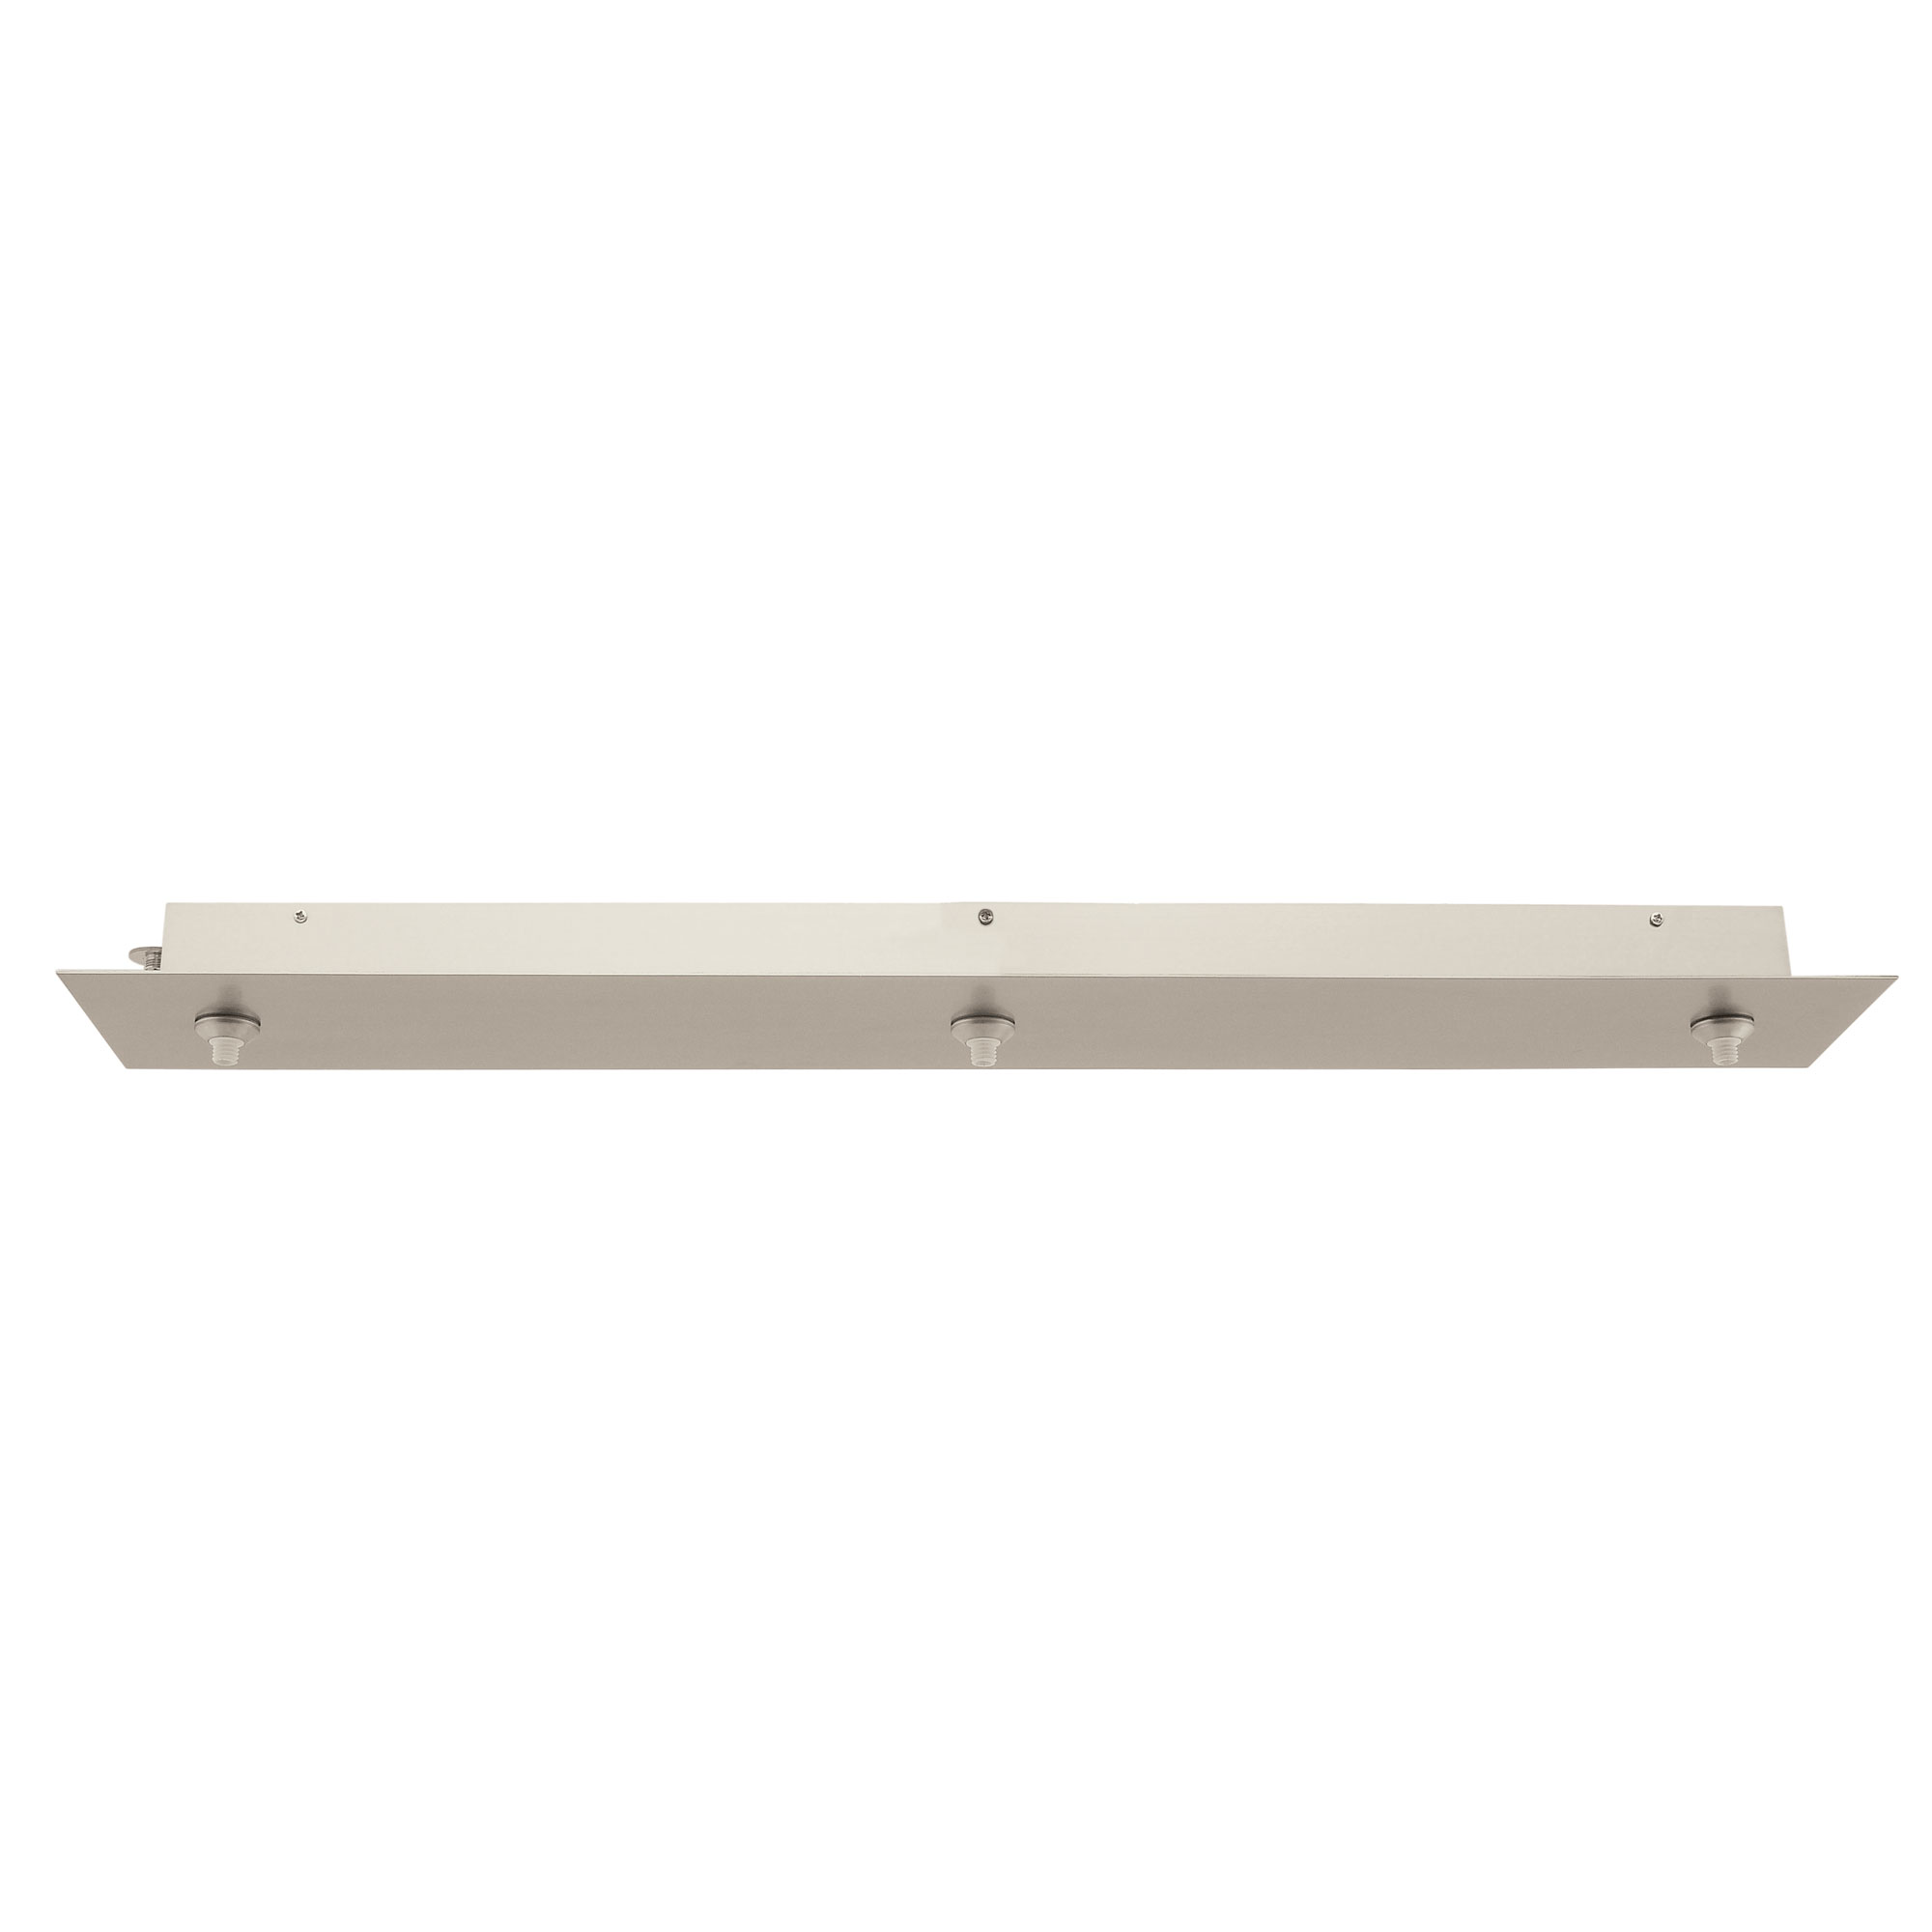 Fast Jack LED Linear 3 Port Canopy